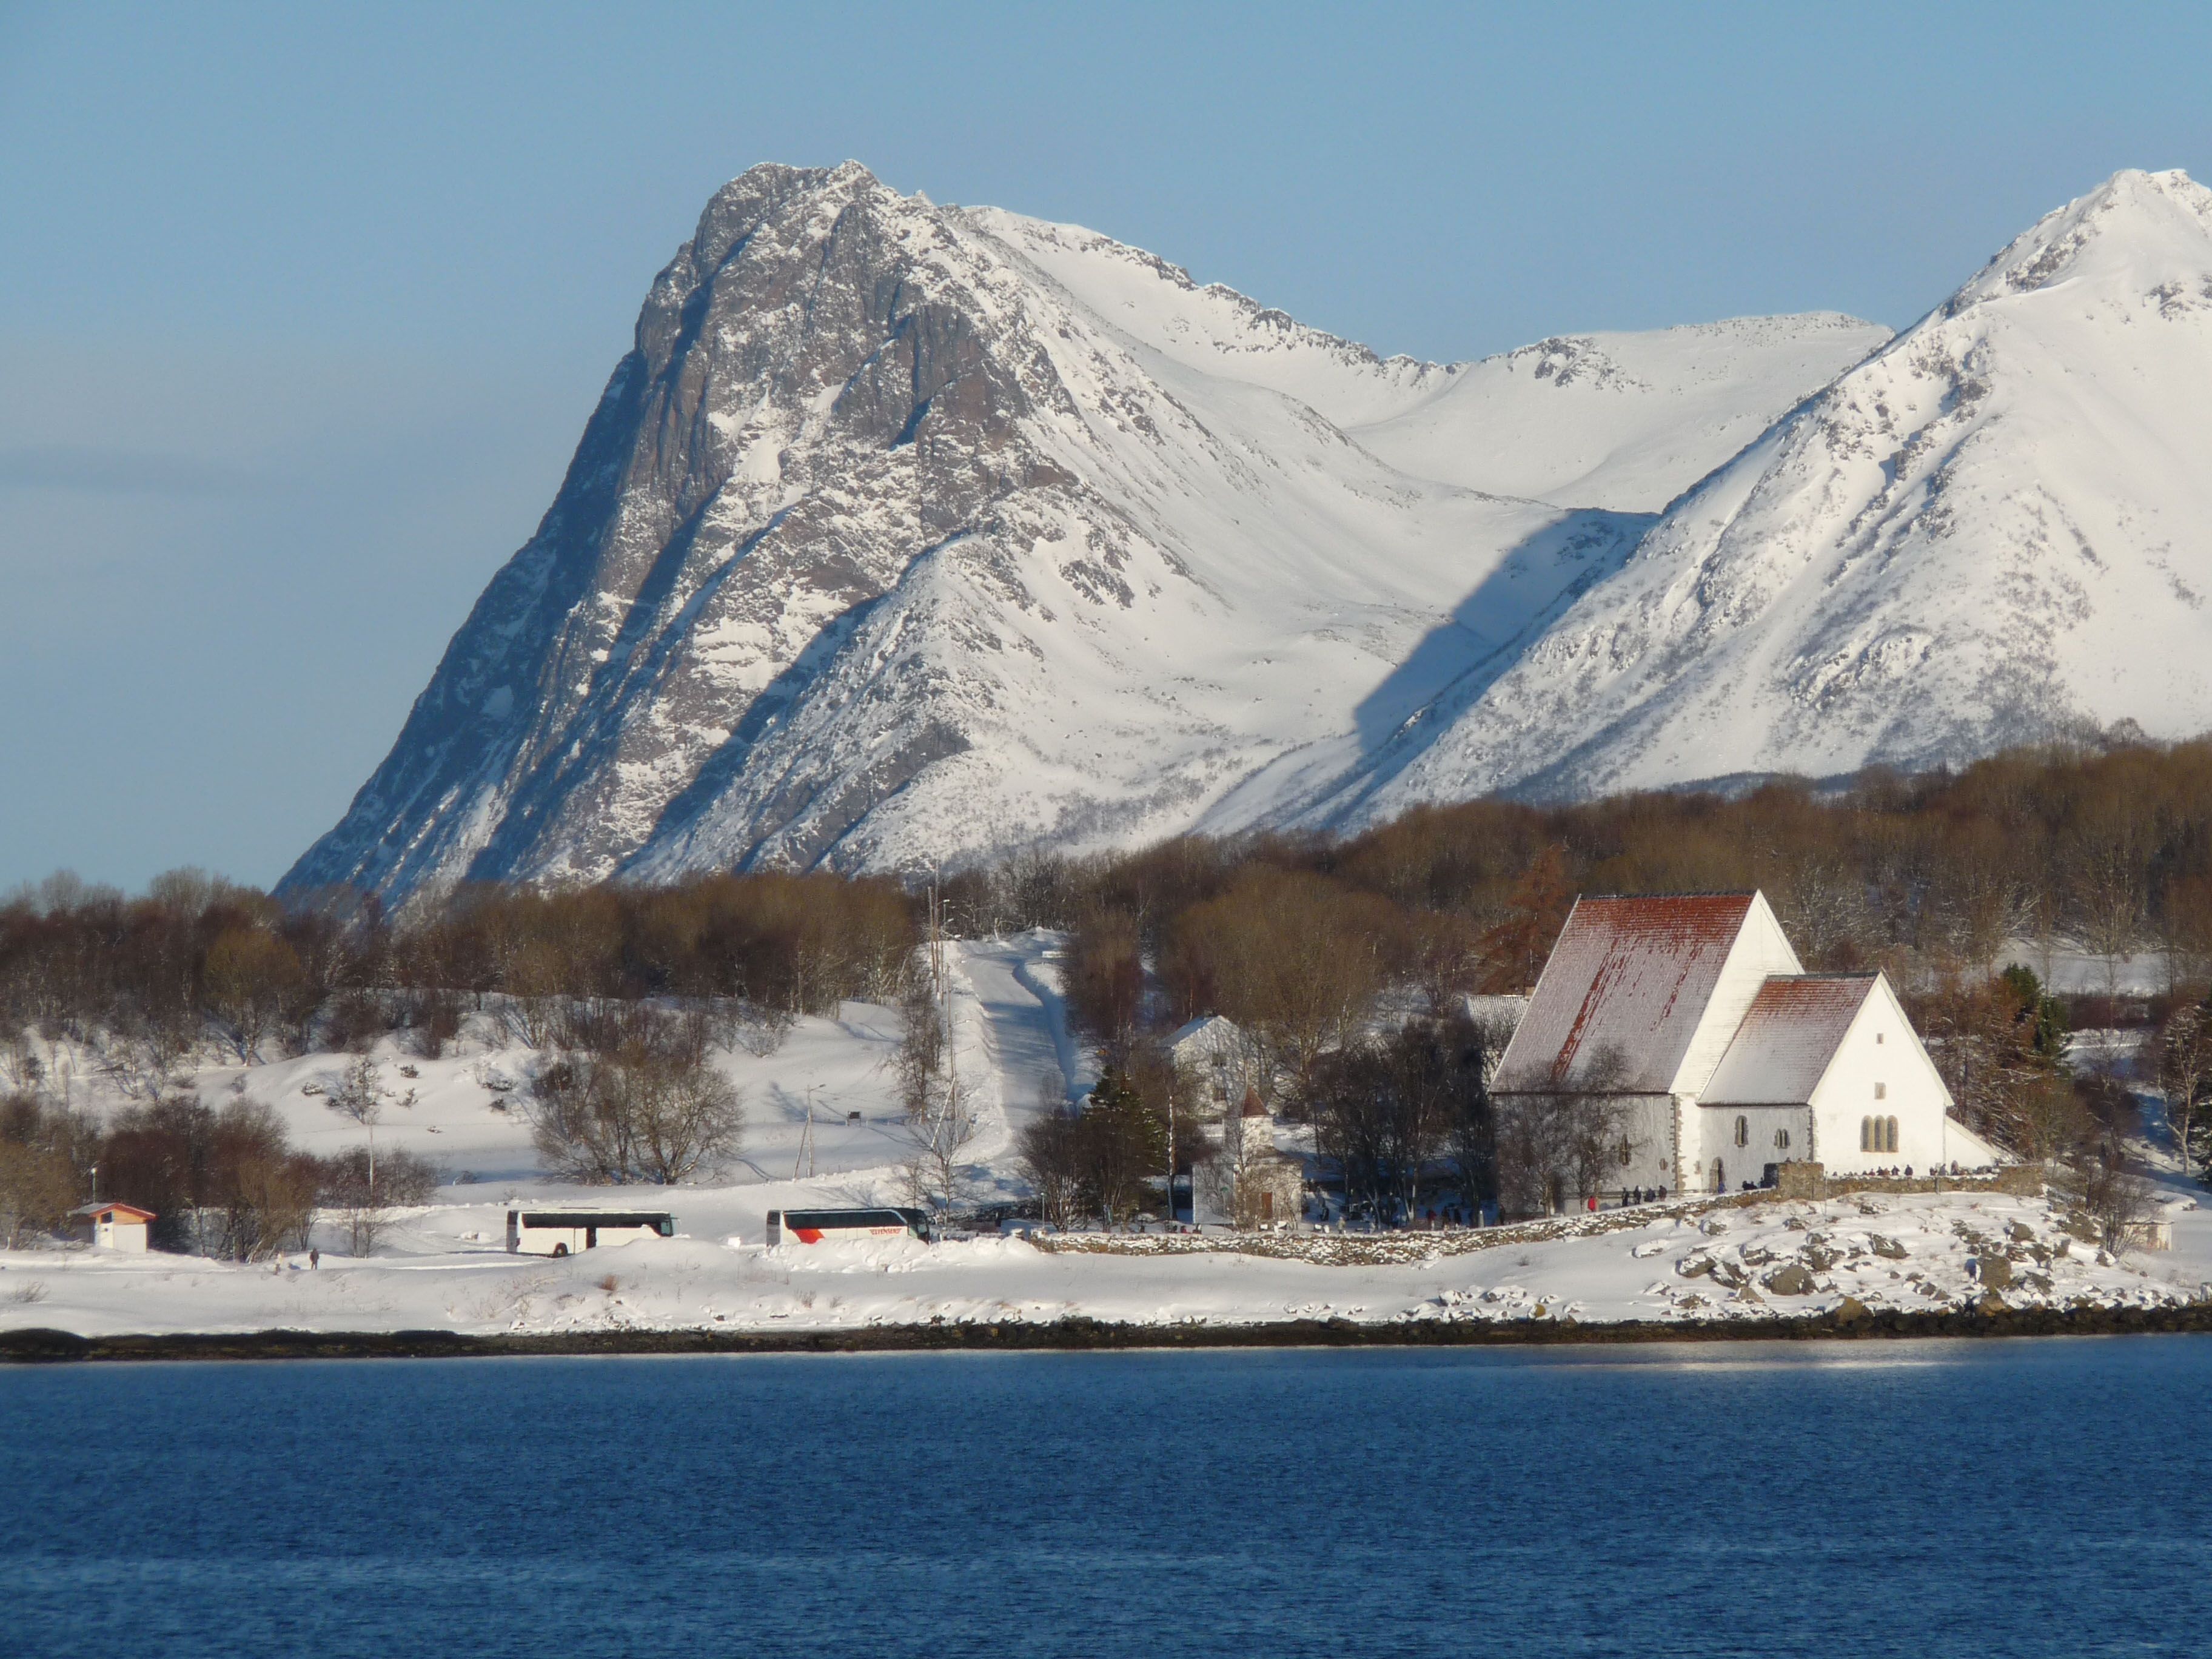 Trondenes Church, Norway. Photo taken on March 11, 2011.